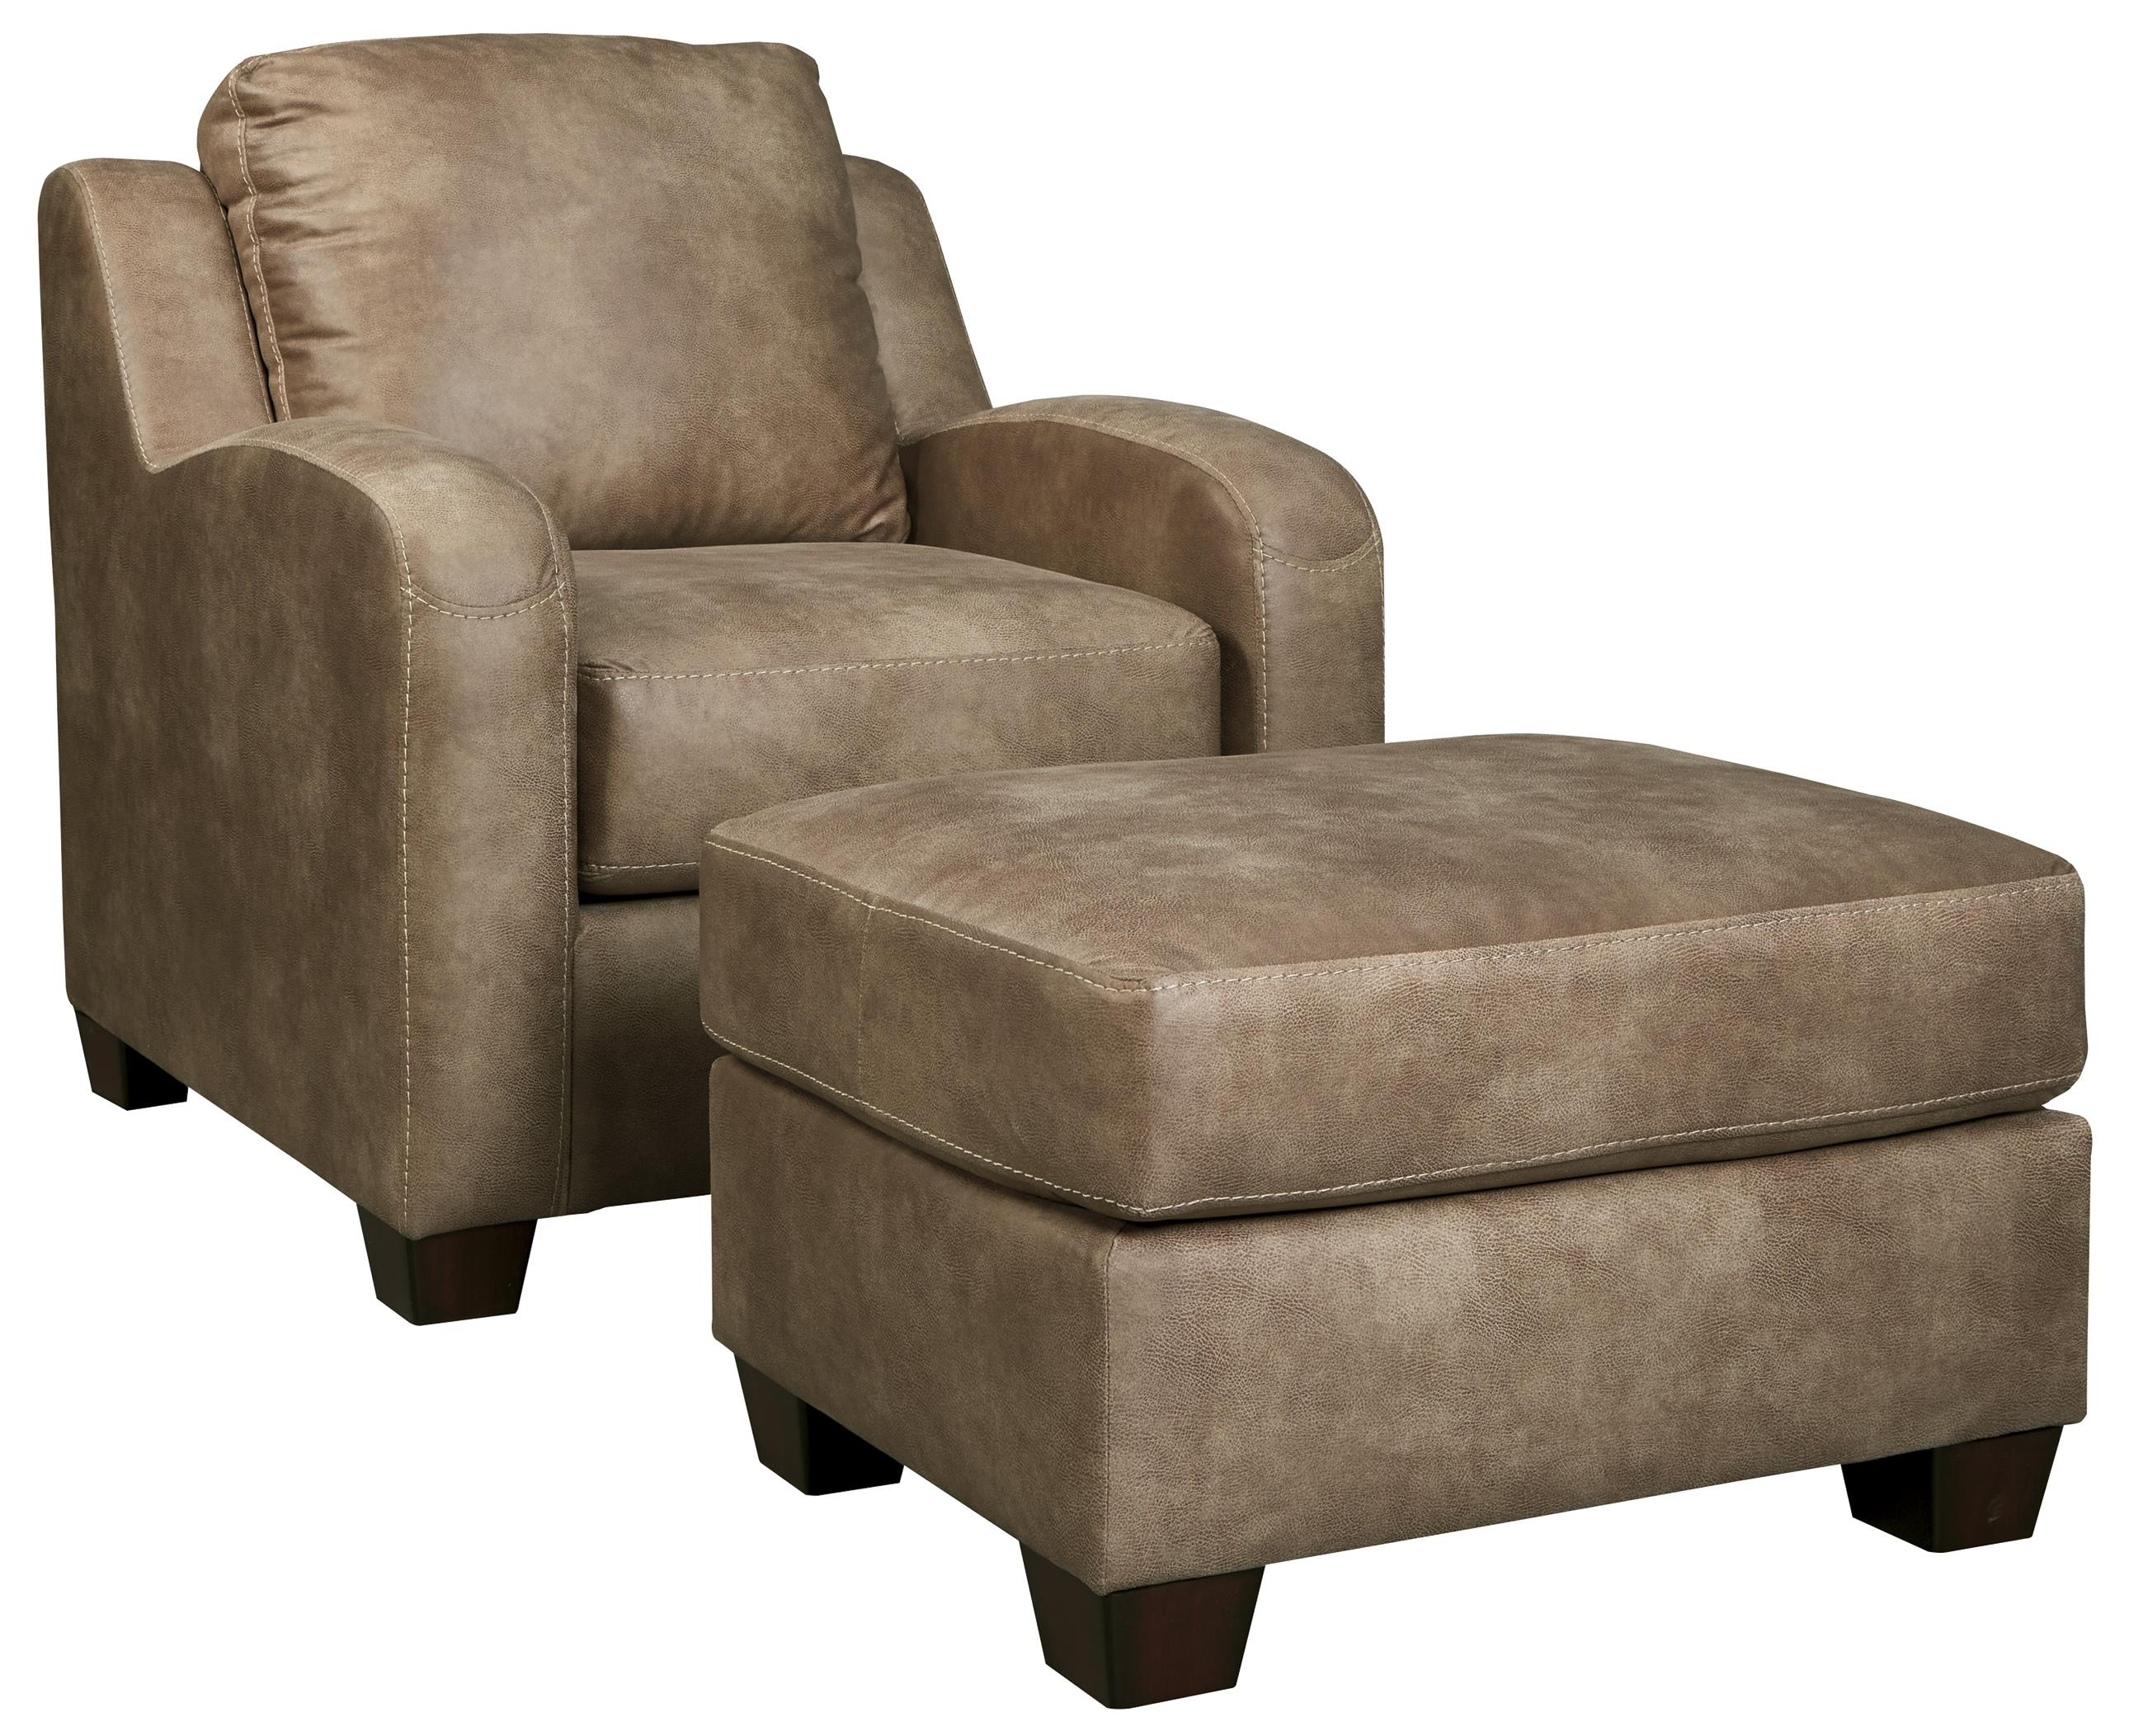 Benchcraft Alturo Chair & Ottoman - Item Number: 6000320+14